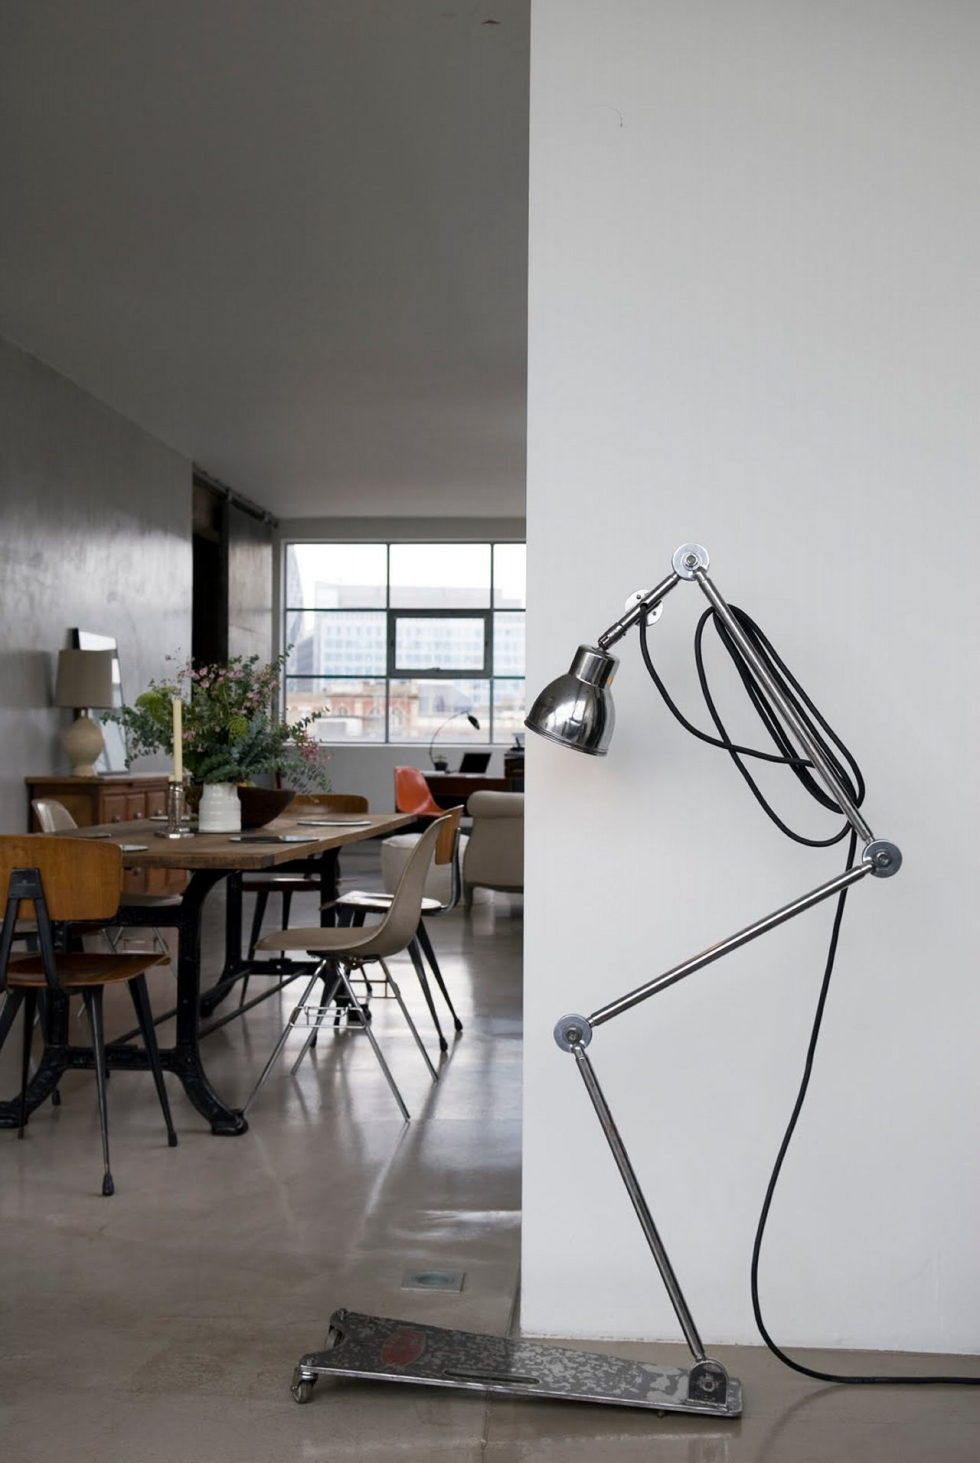 Loft in the clothing factory in London - Design ideas